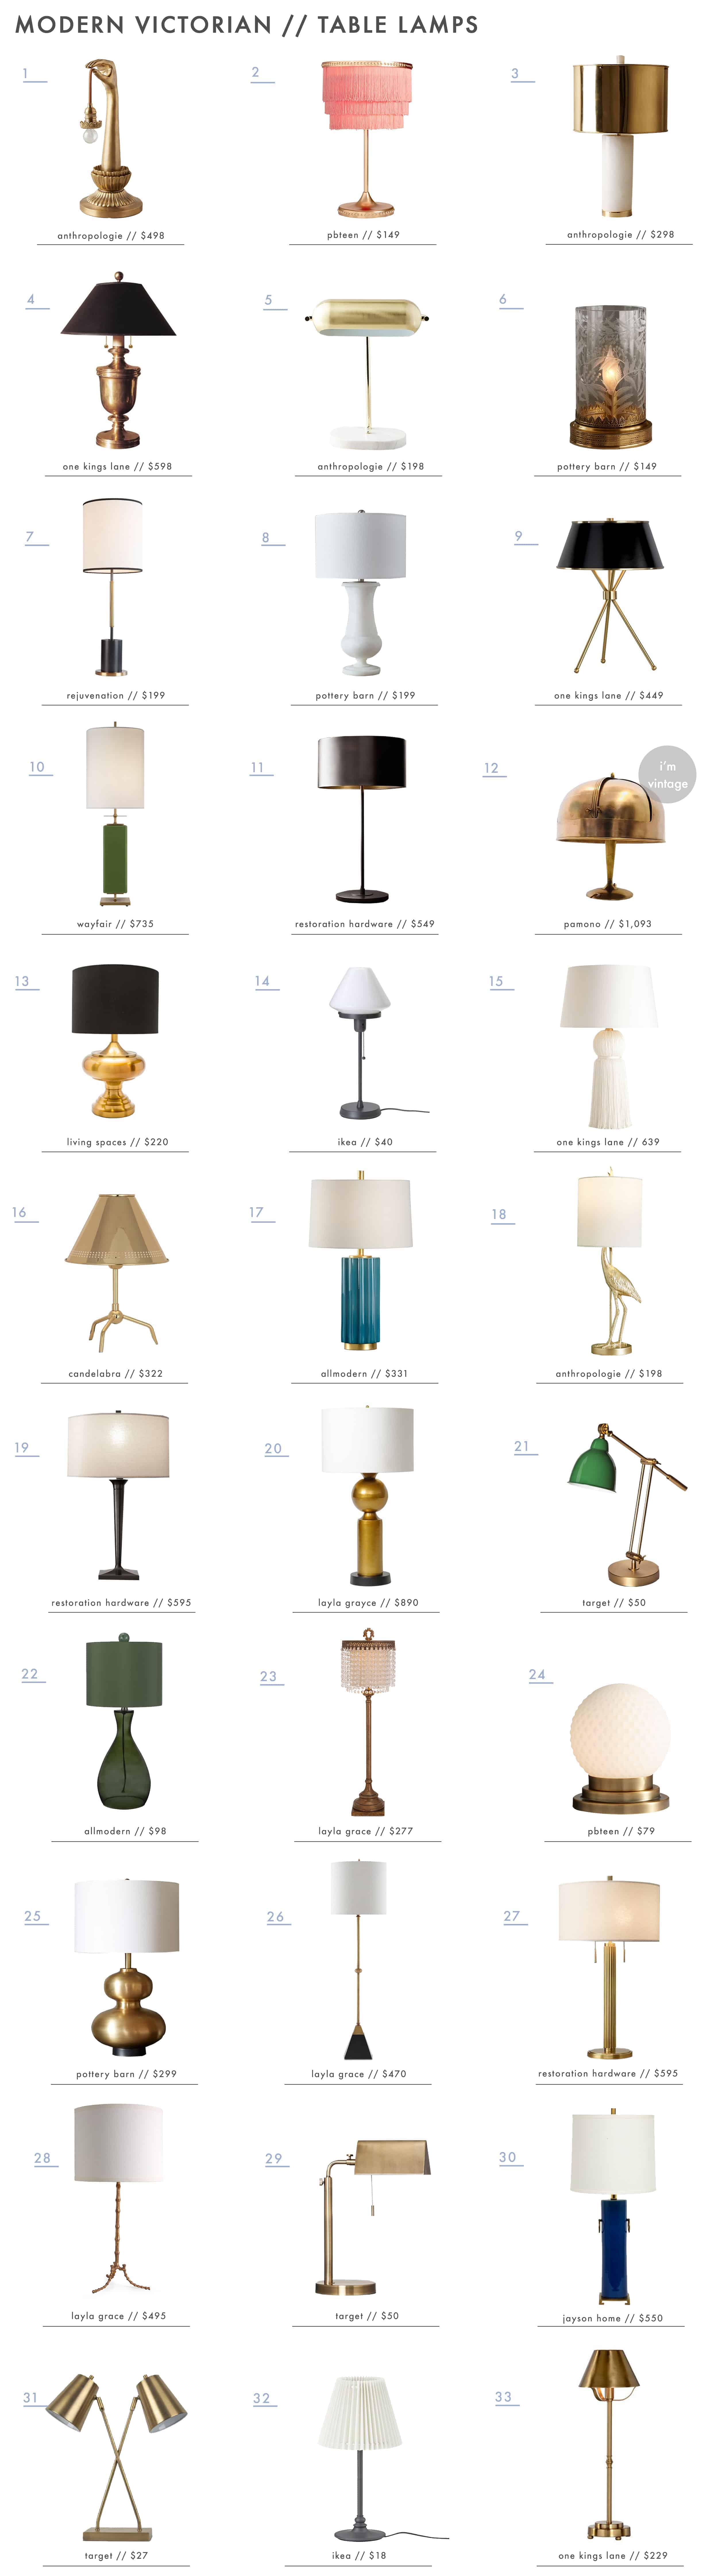 Emily Henderson Modern Victorian Trend Lighting Table Lamps Roundup